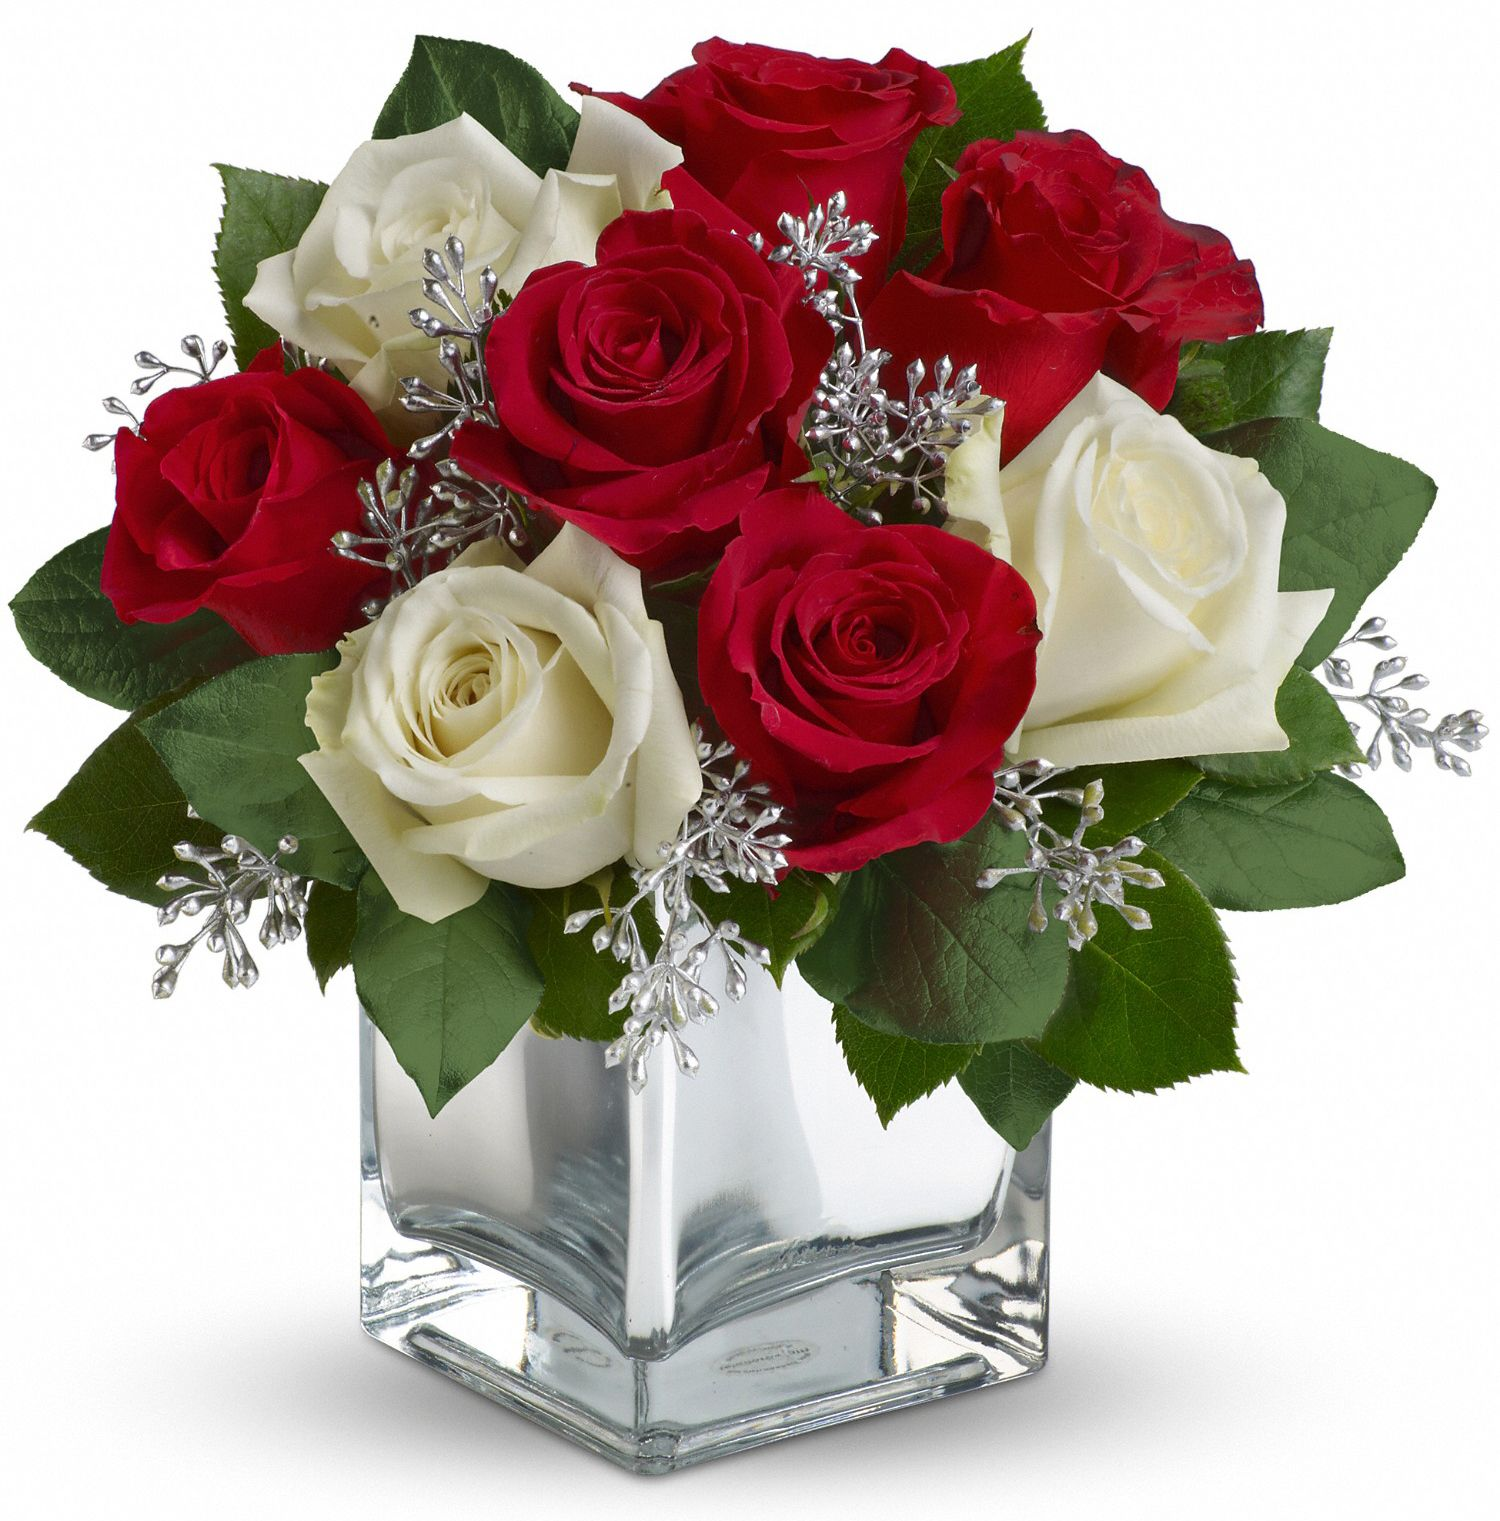 The Perfect Christmas Hostess Gift This Exciting Bouquet Of Red And White Roses In A Dazzling